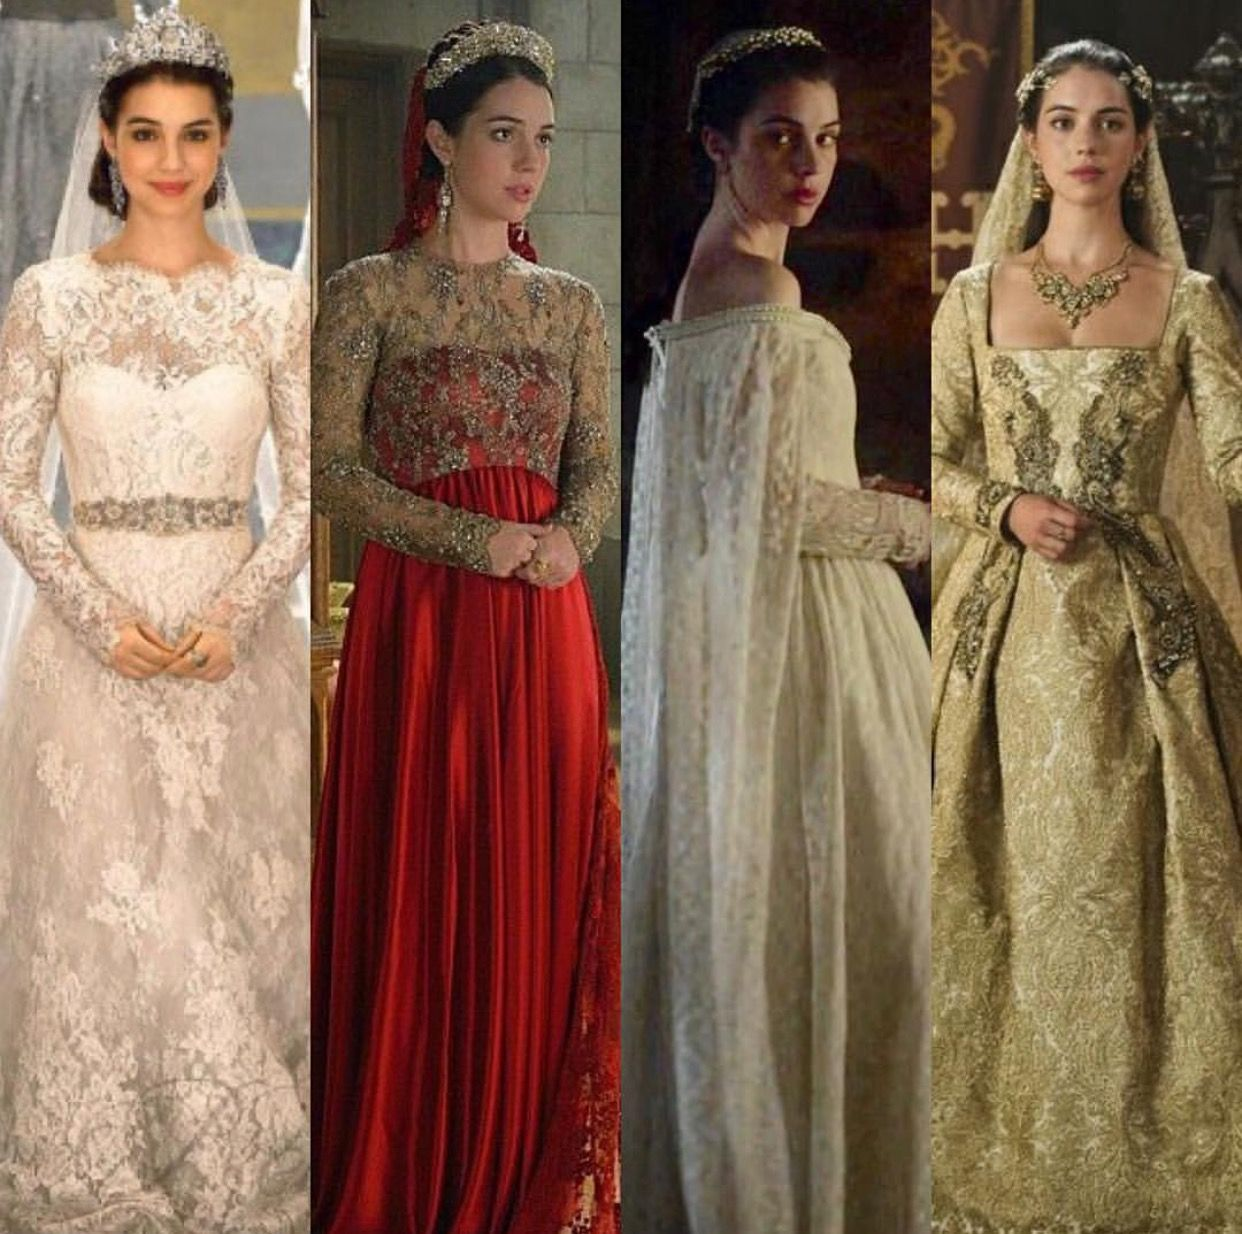 Mary, Queen Of Scots Wedding Dresses | Reign | Pinterest | Mary ...